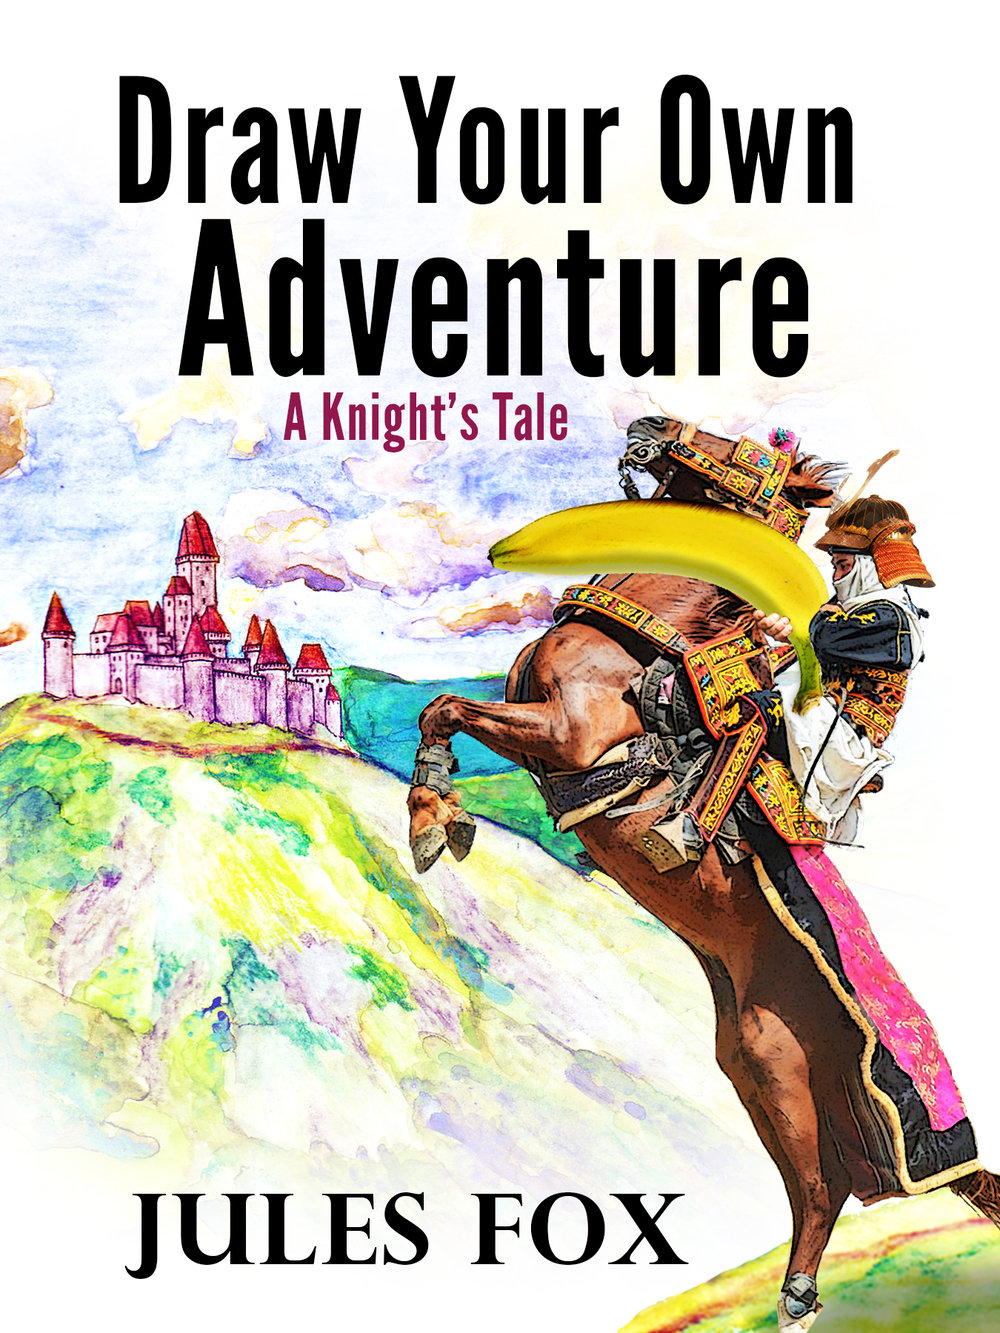 Draw Your Own Adventure - A Knight's Tale   Pick the perfect words to make this story serious, or silly! Then illustrate the pictures yourself, or find some help at the back of the book.  In this story, a knight goes on a quest to rescue a princess from an evil wizard... unless you turn the tables and change up the story!  A good choice for middle grade children ages 8-12.